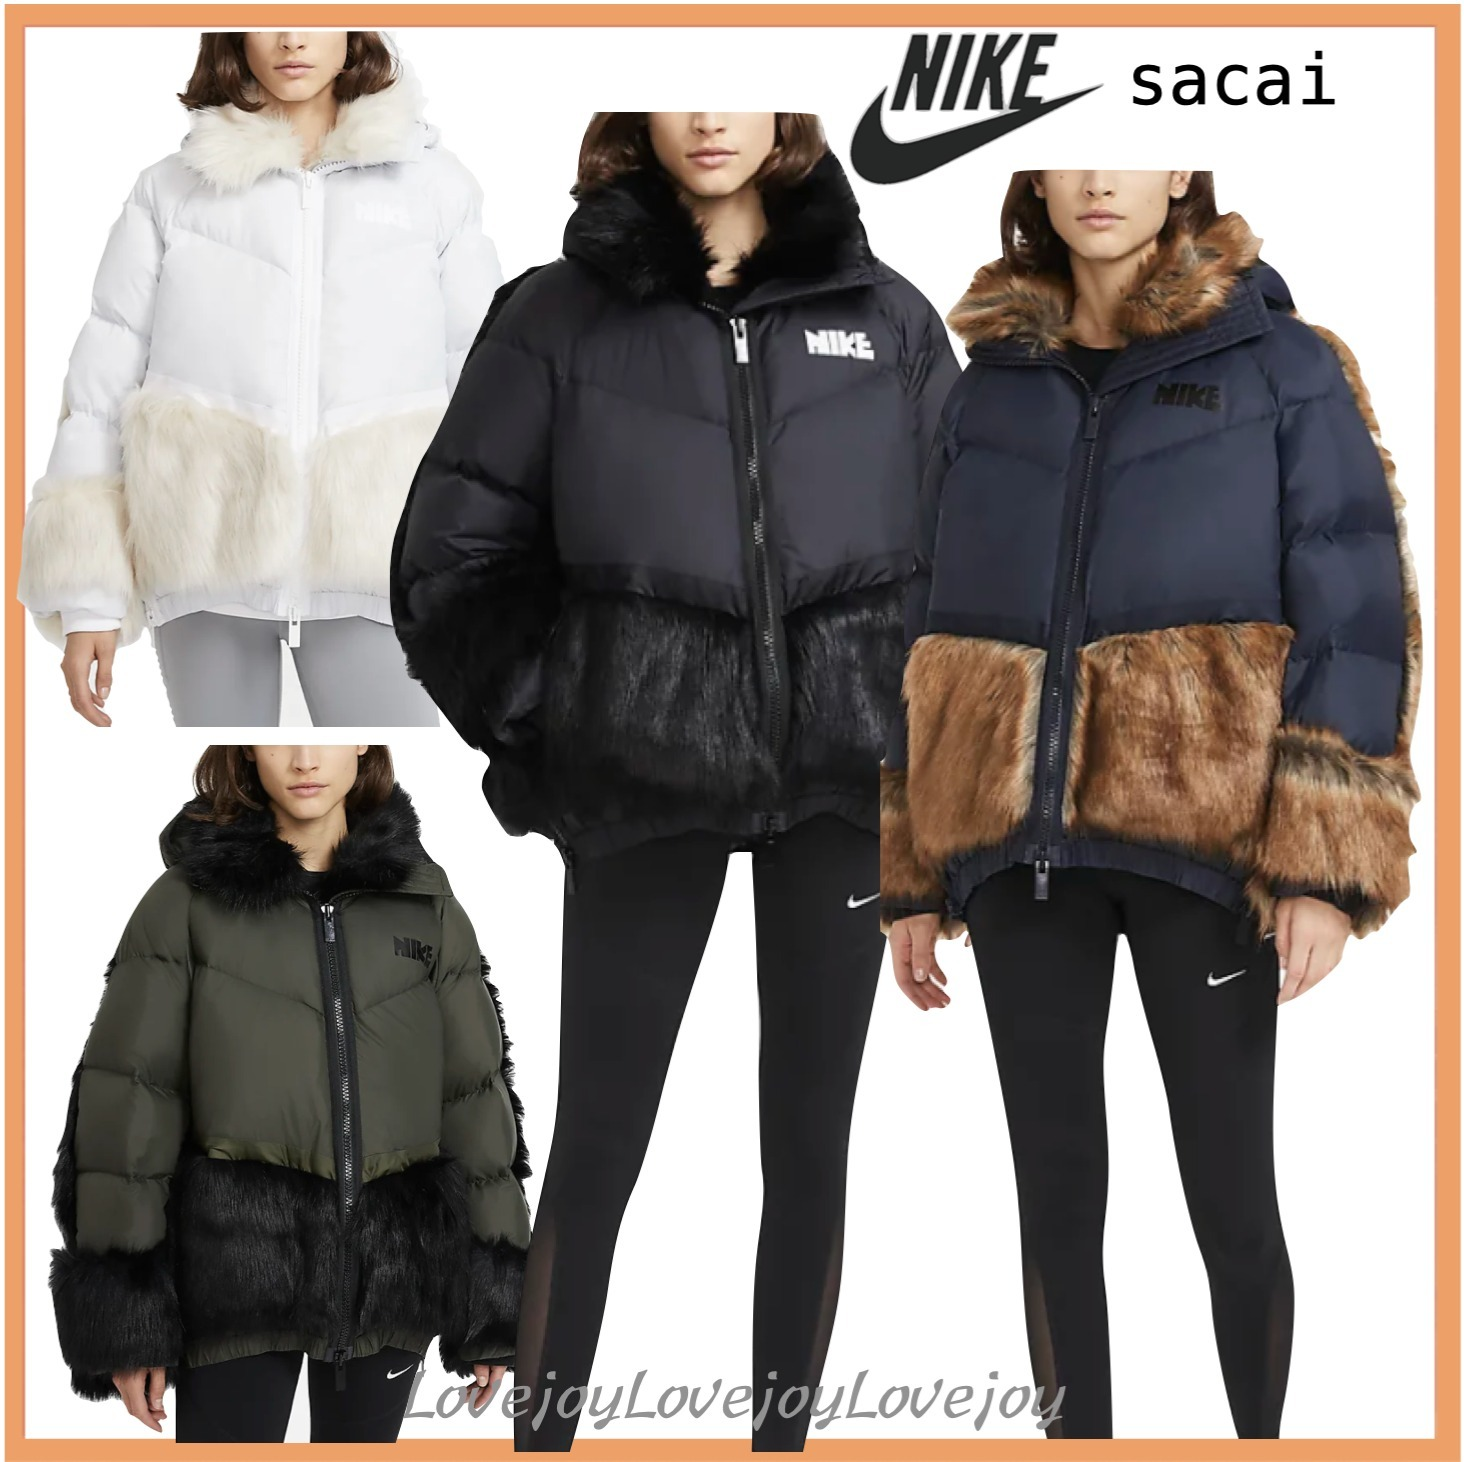 shop sacai clothing